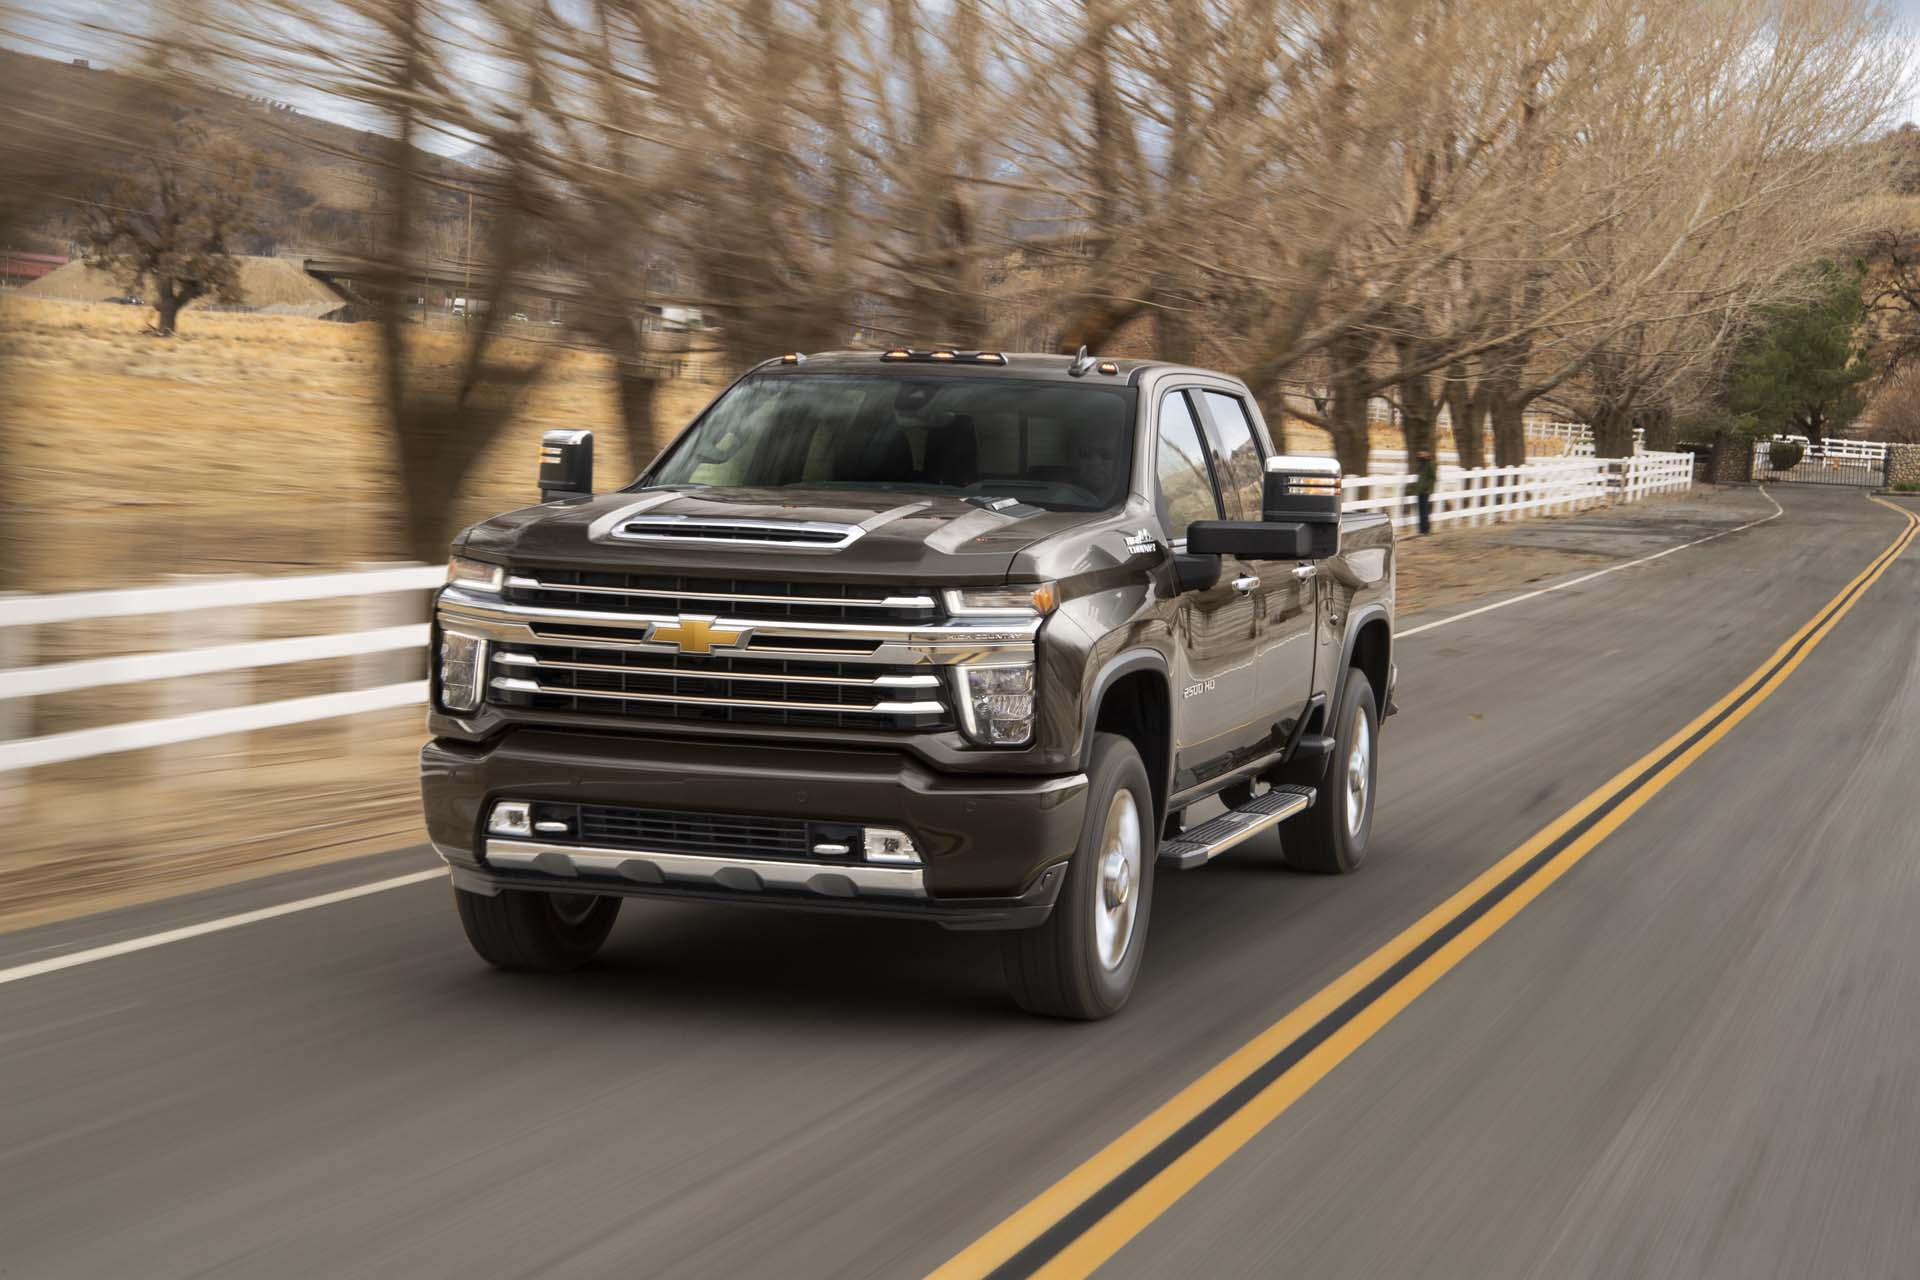 2020 Chevrolet Silverado 2500hd Chevy Review Ratings Specs Prices And Photos The Car Connection